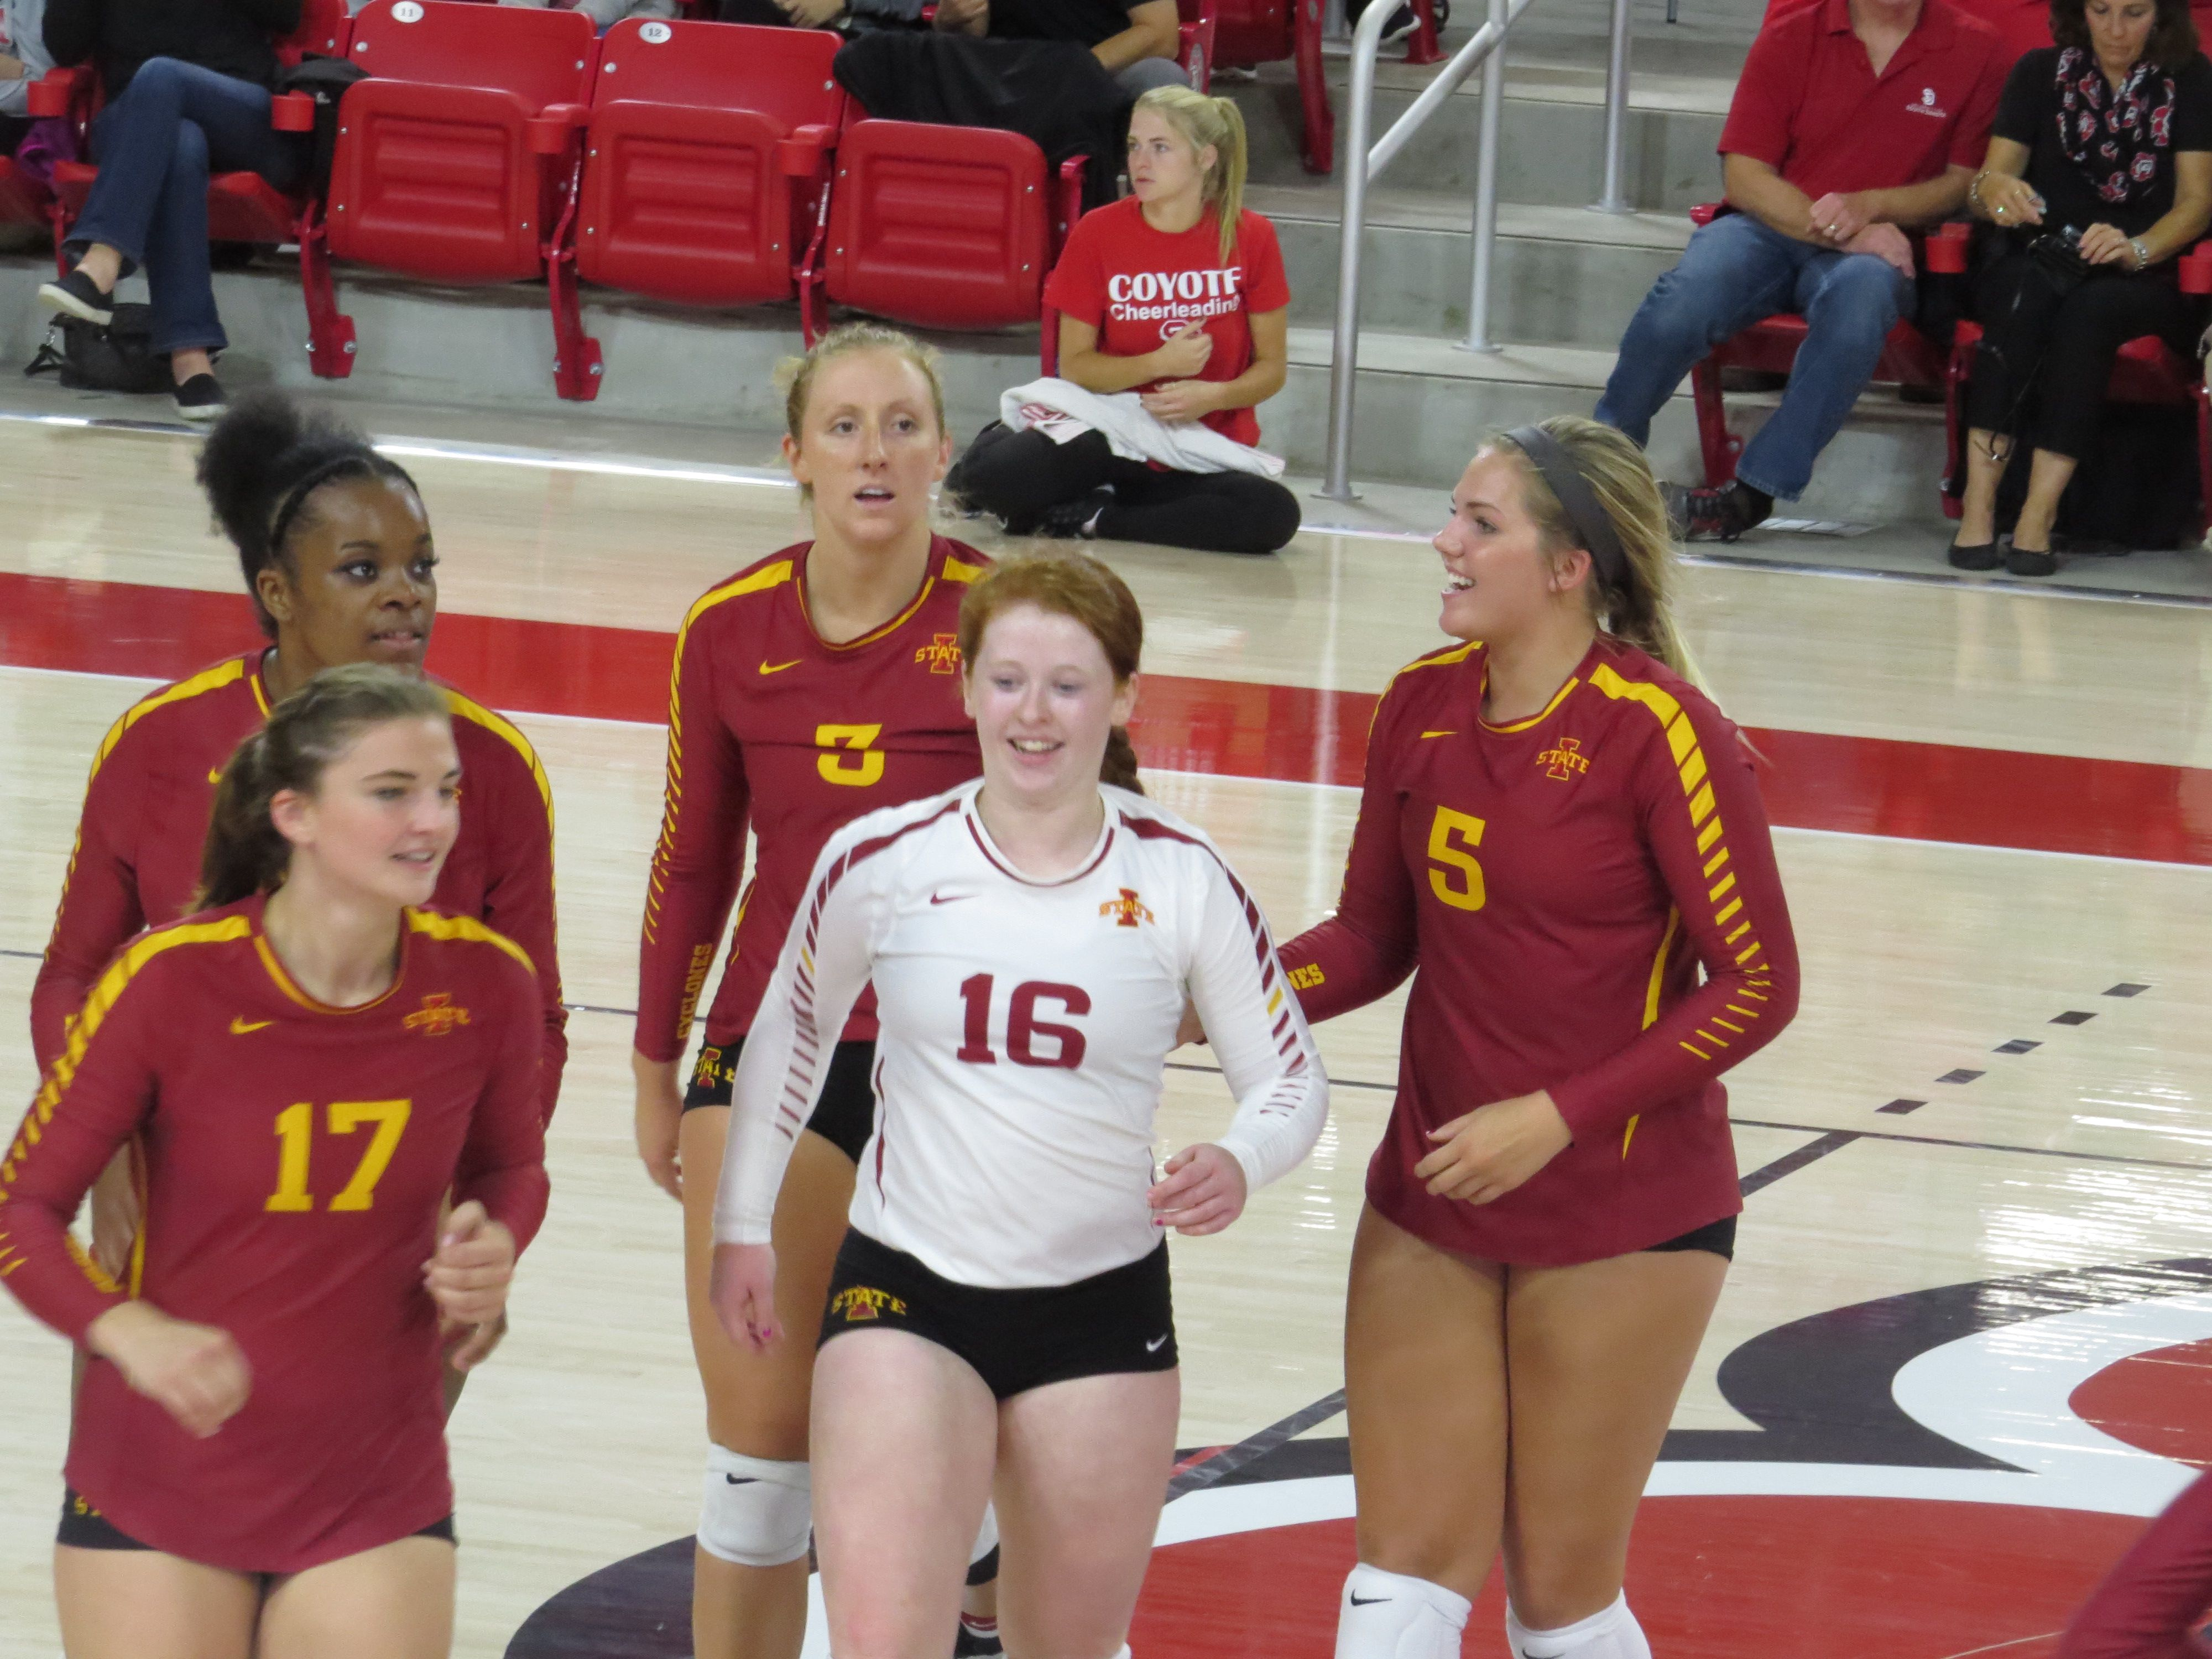 Anna Kiel Iowa State Isu Cyclone Volleyball 11 Isu Cyclones Iowa Iowa State